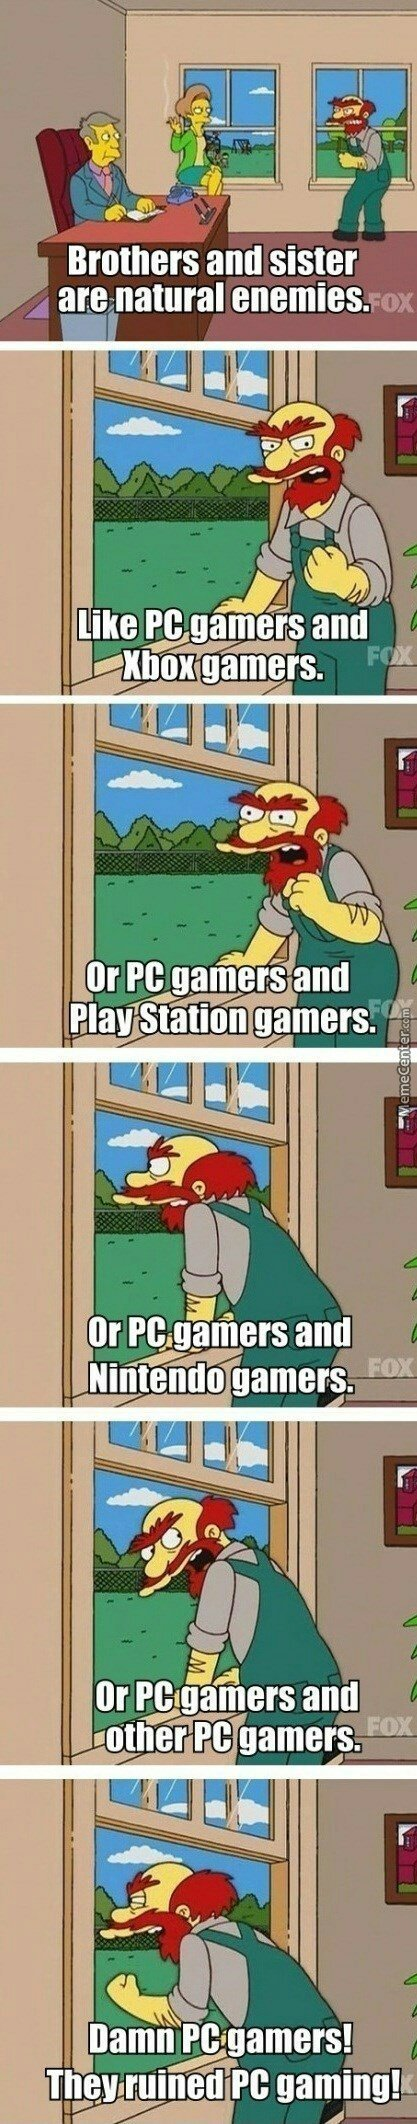 PC gamers hate everyone!!! - meme